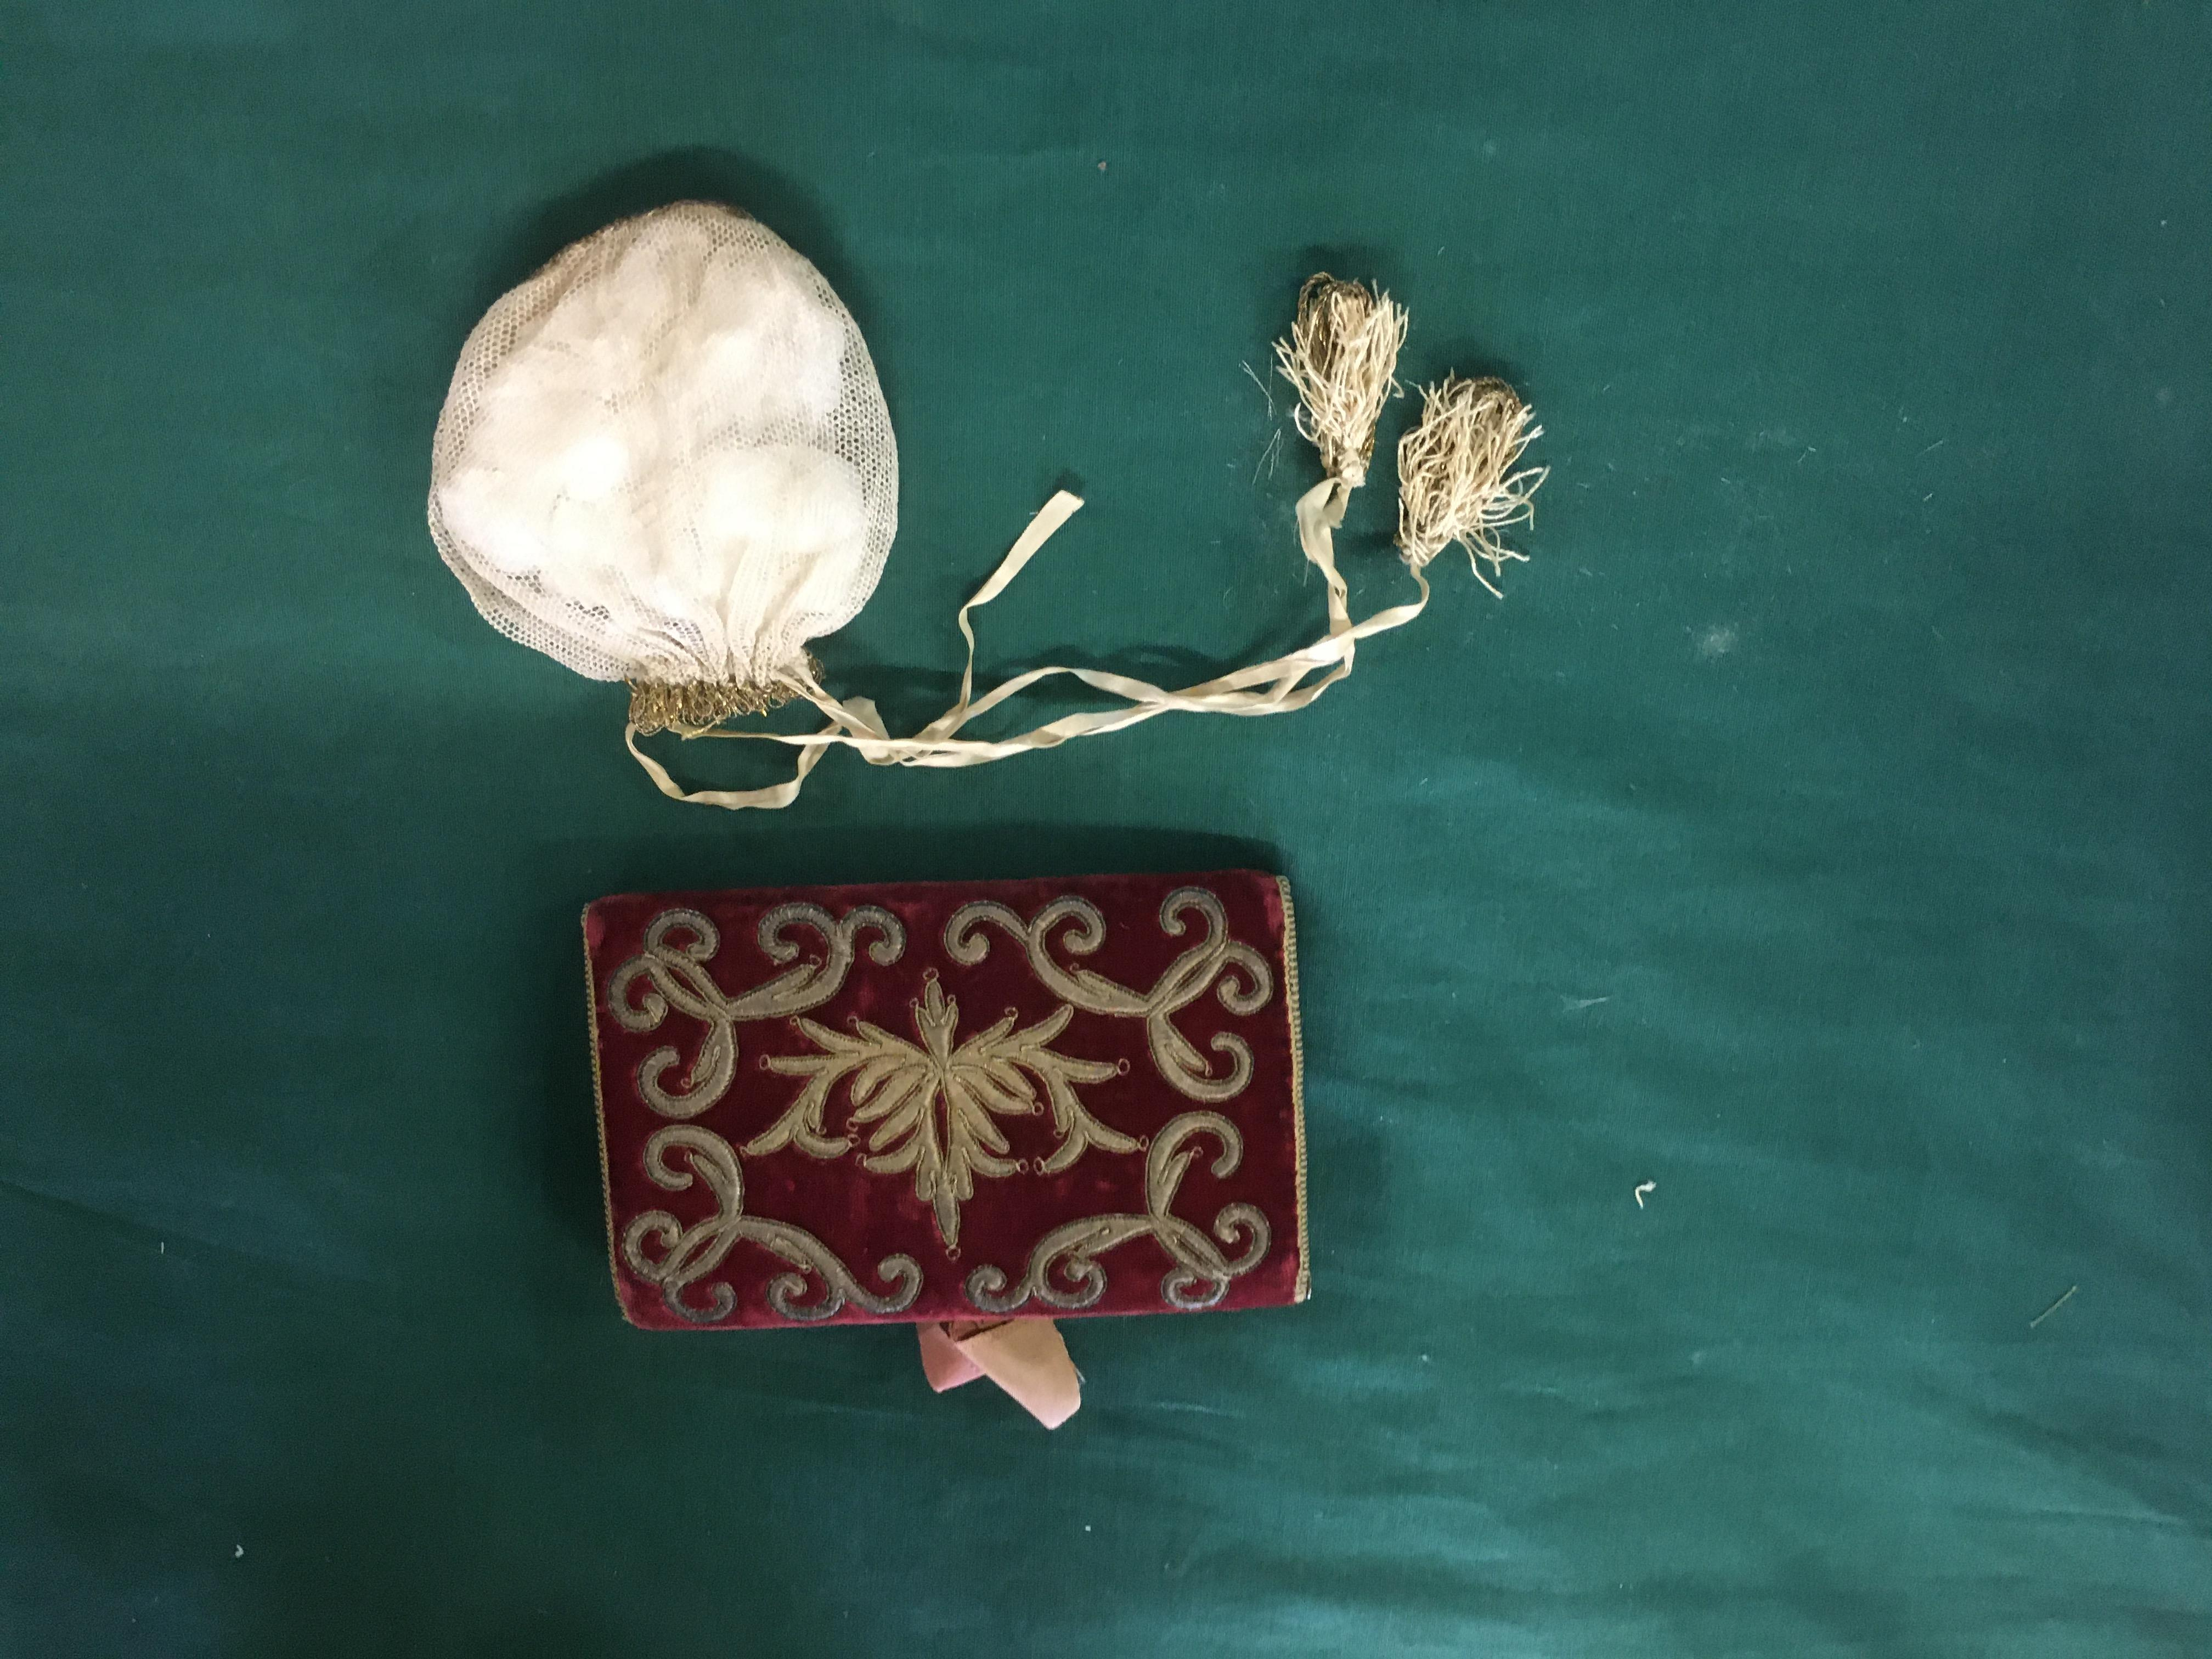 Lot 1864 - 18THC CARD CASE & VINTAGE PURSES a late 18thc dark red velvet card case with metallic thread